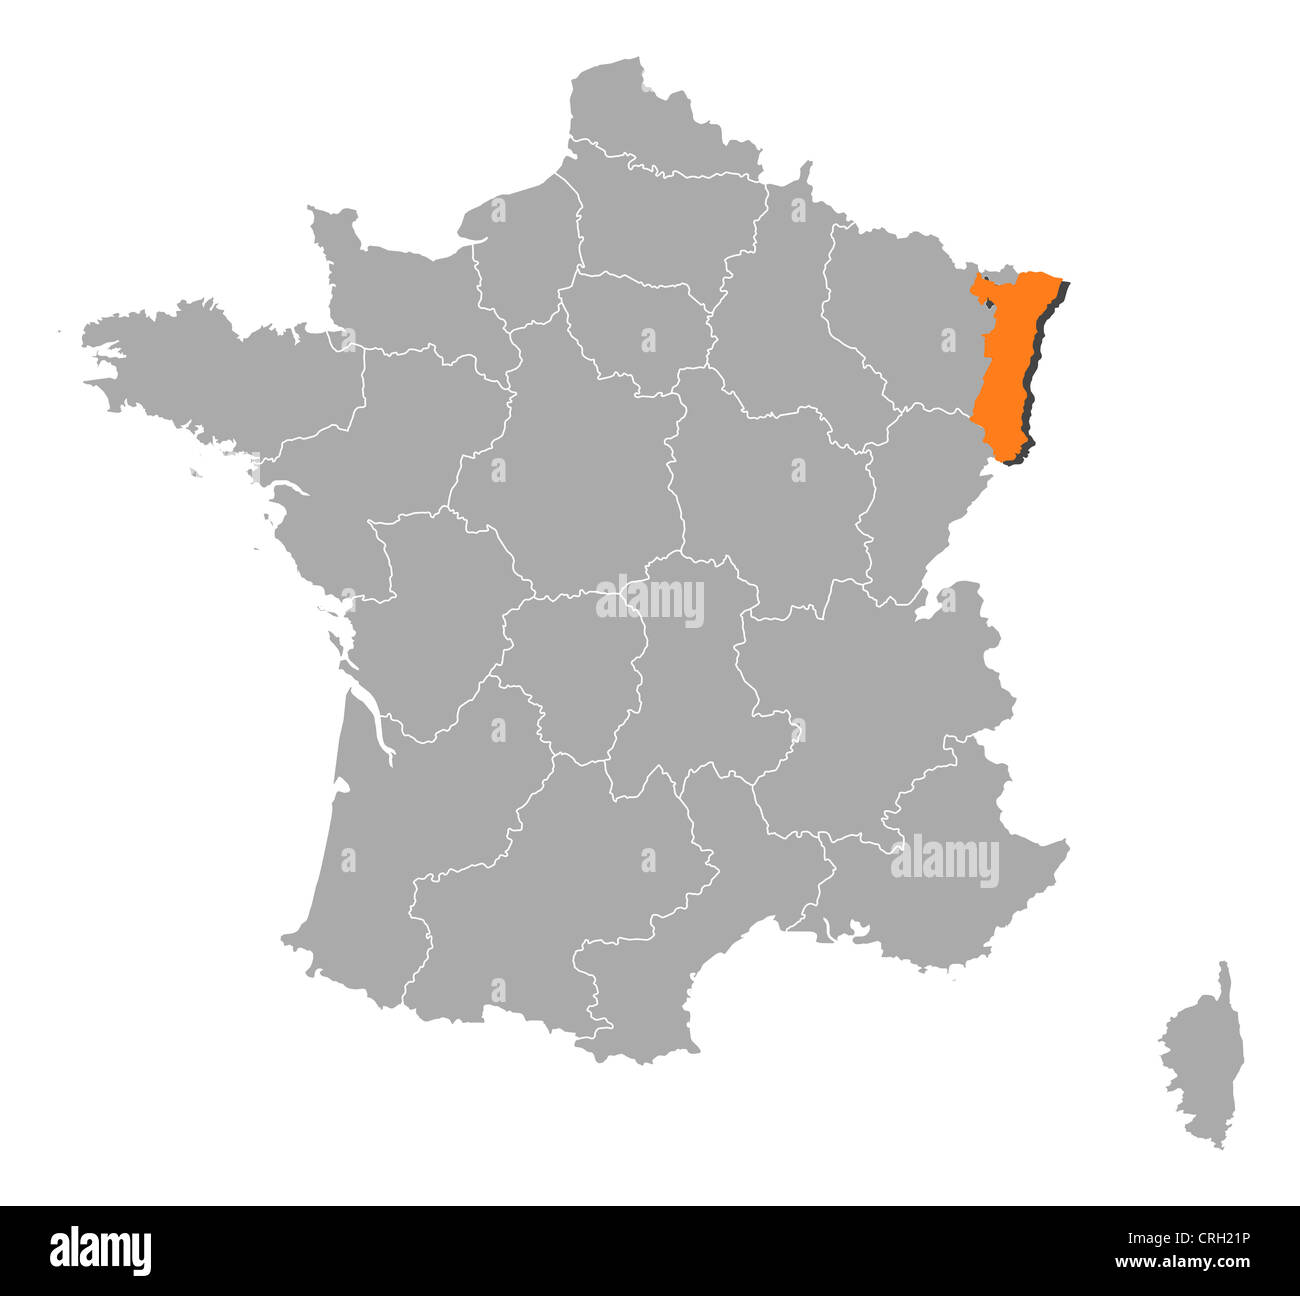 Political map of france with the several regions where alsace is political map of france with the several regions where alsace is highlighted gumiabroncs Images